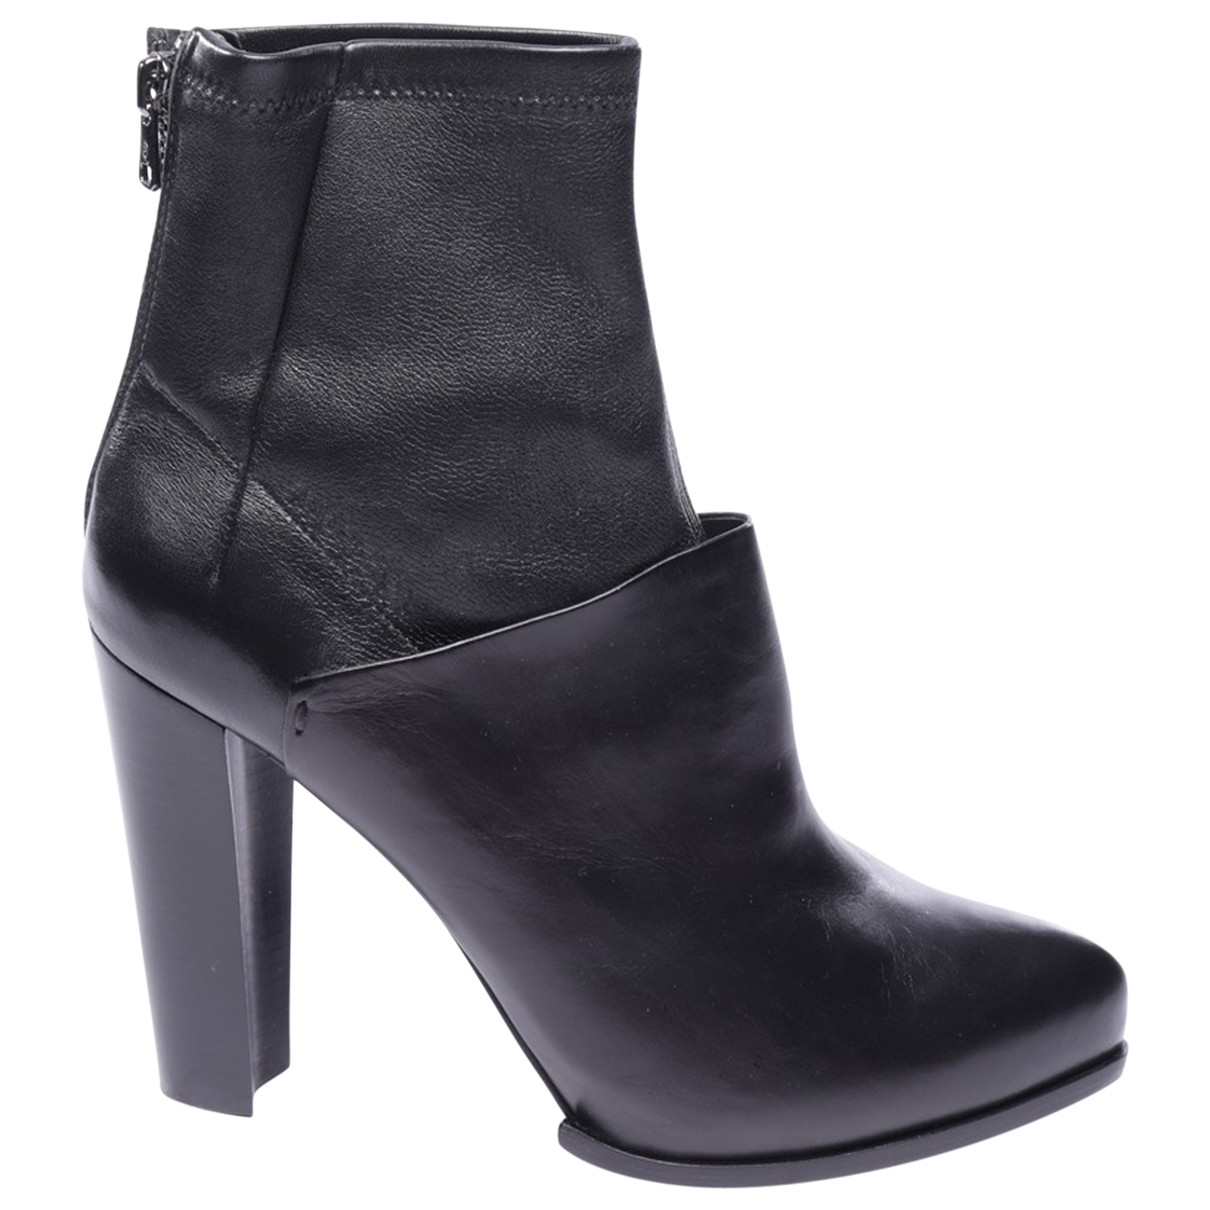 Alexander Mcqueen \N Black Leather Ankle boots for Women 39 EU